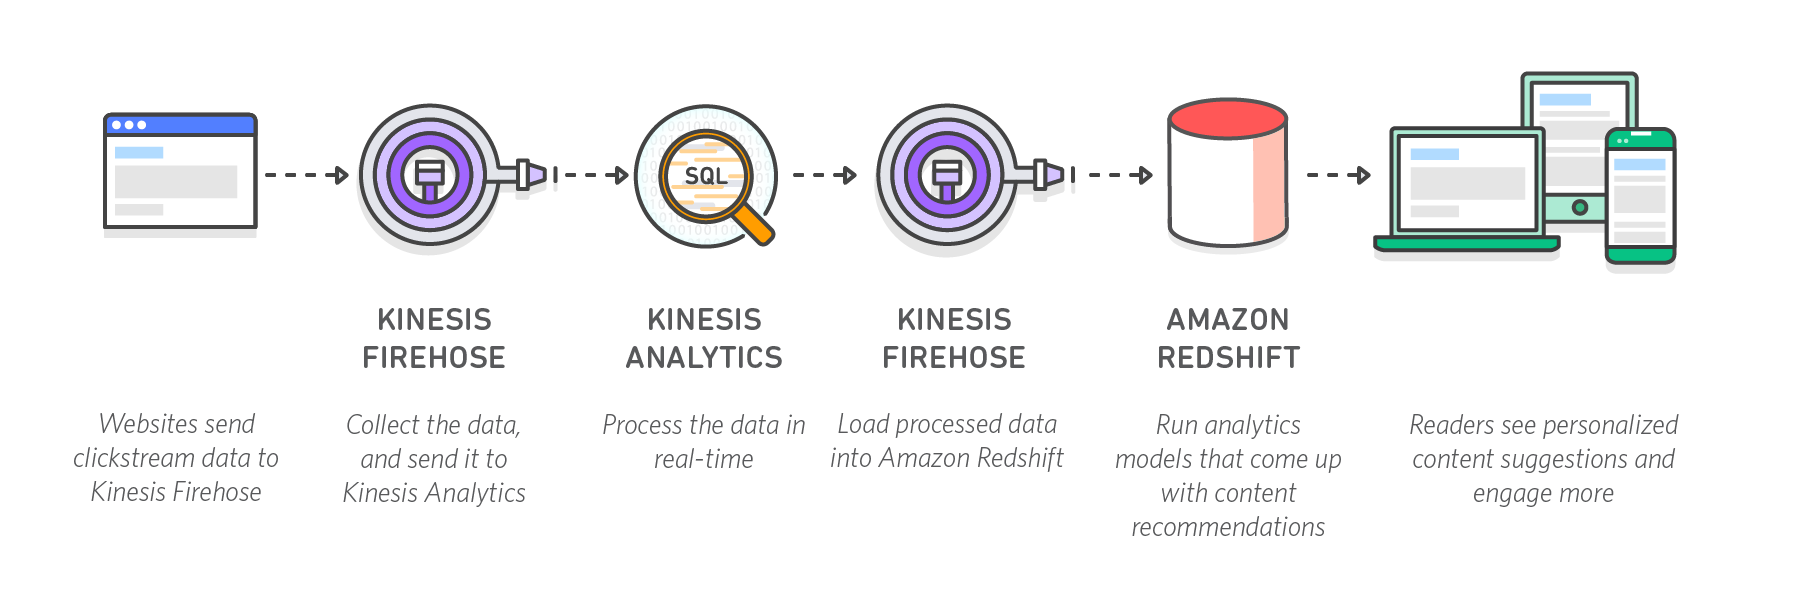 amazon-kinesis-example.png